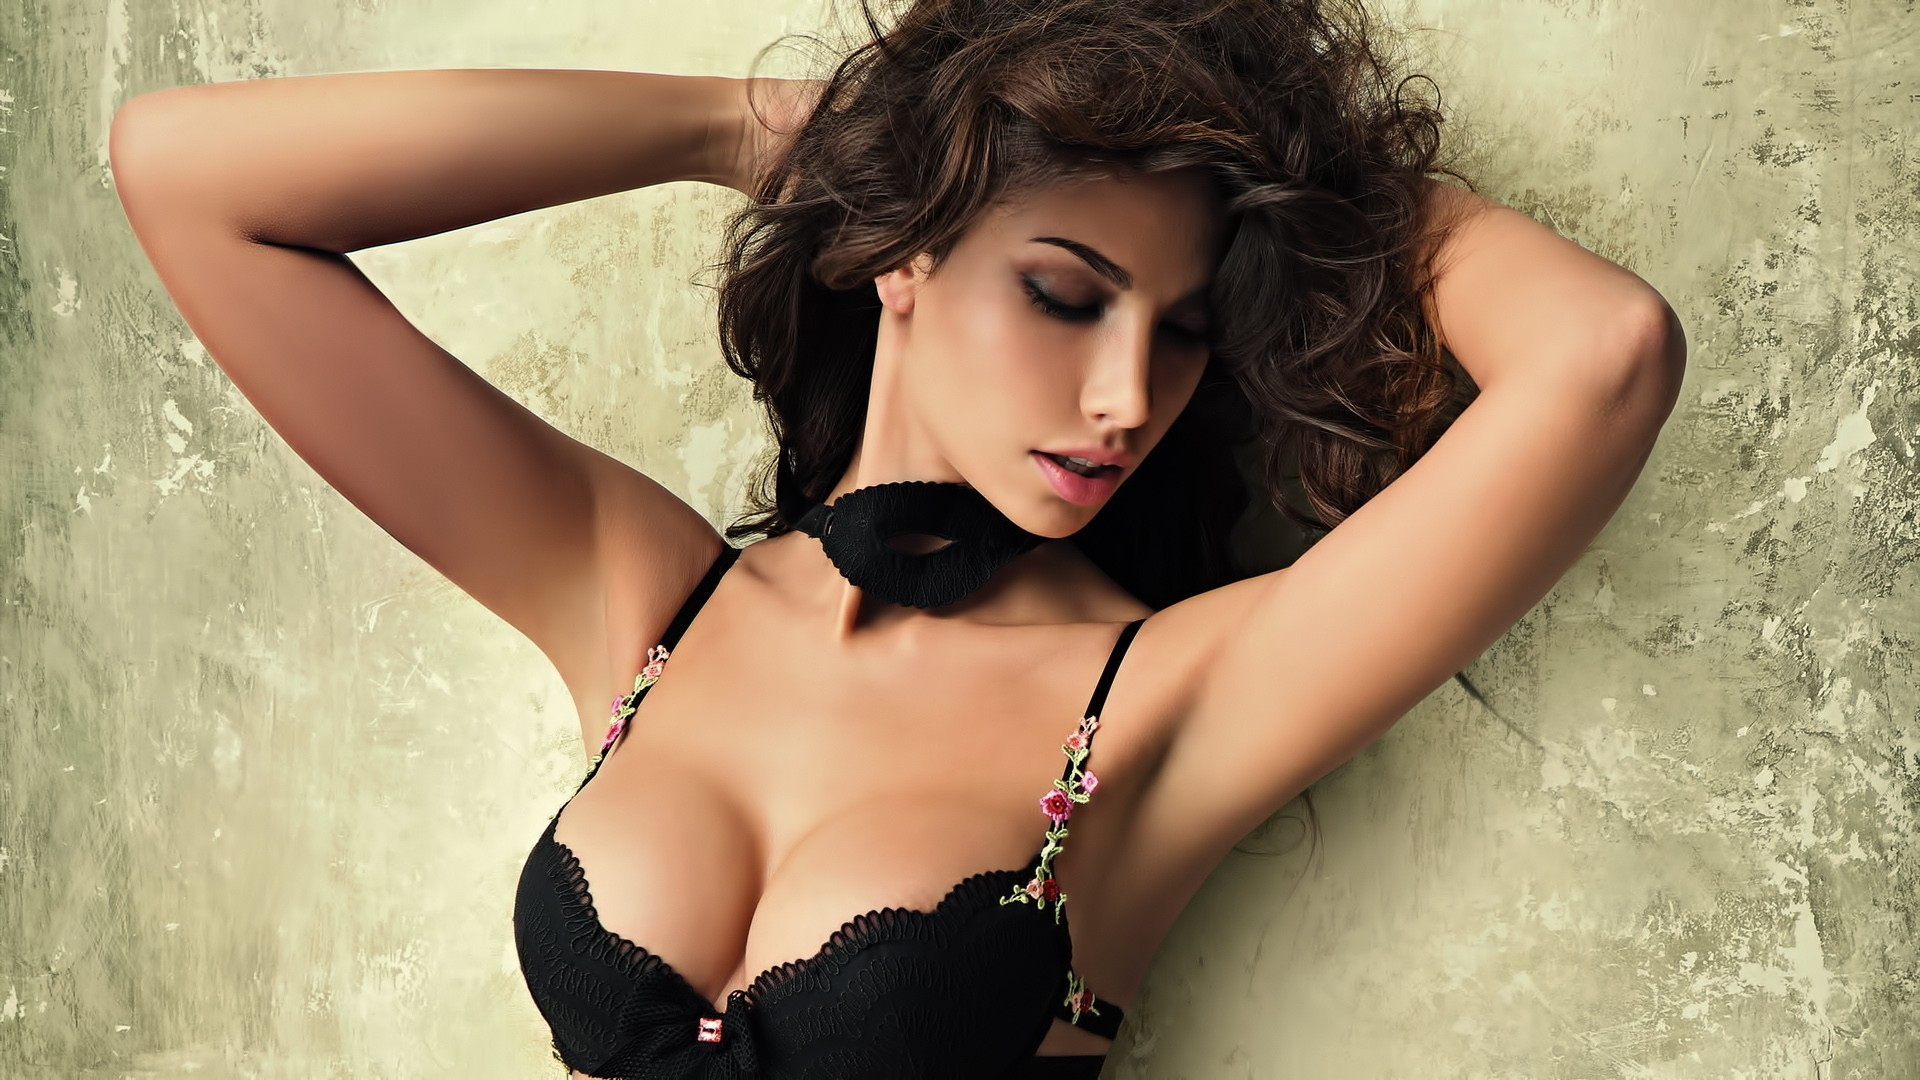 brunettes boobs woman bra HD Wallpaper